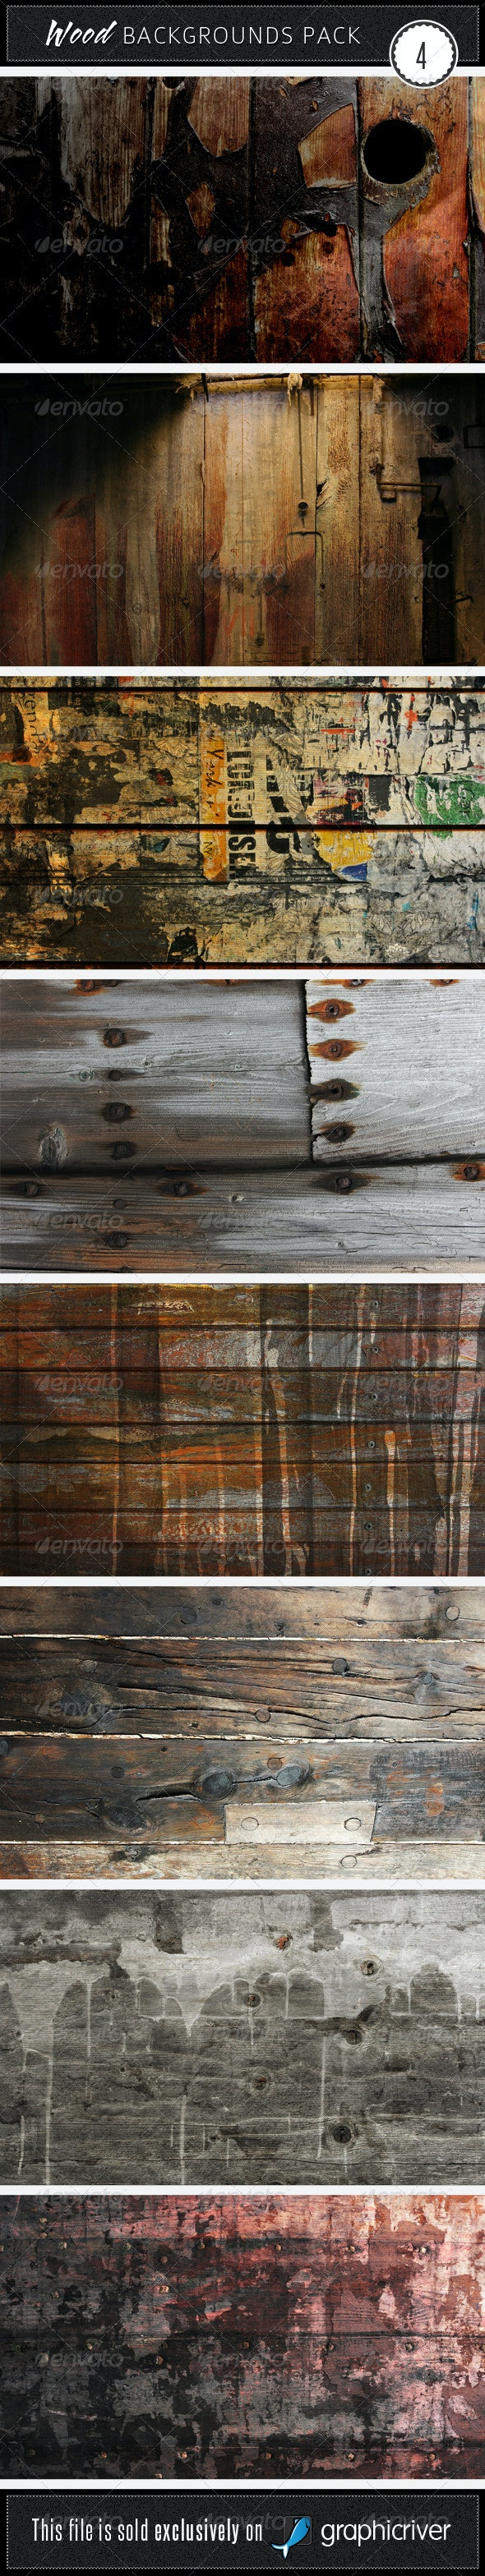 Wood Backgrounds Pack 4 - Wood Textures